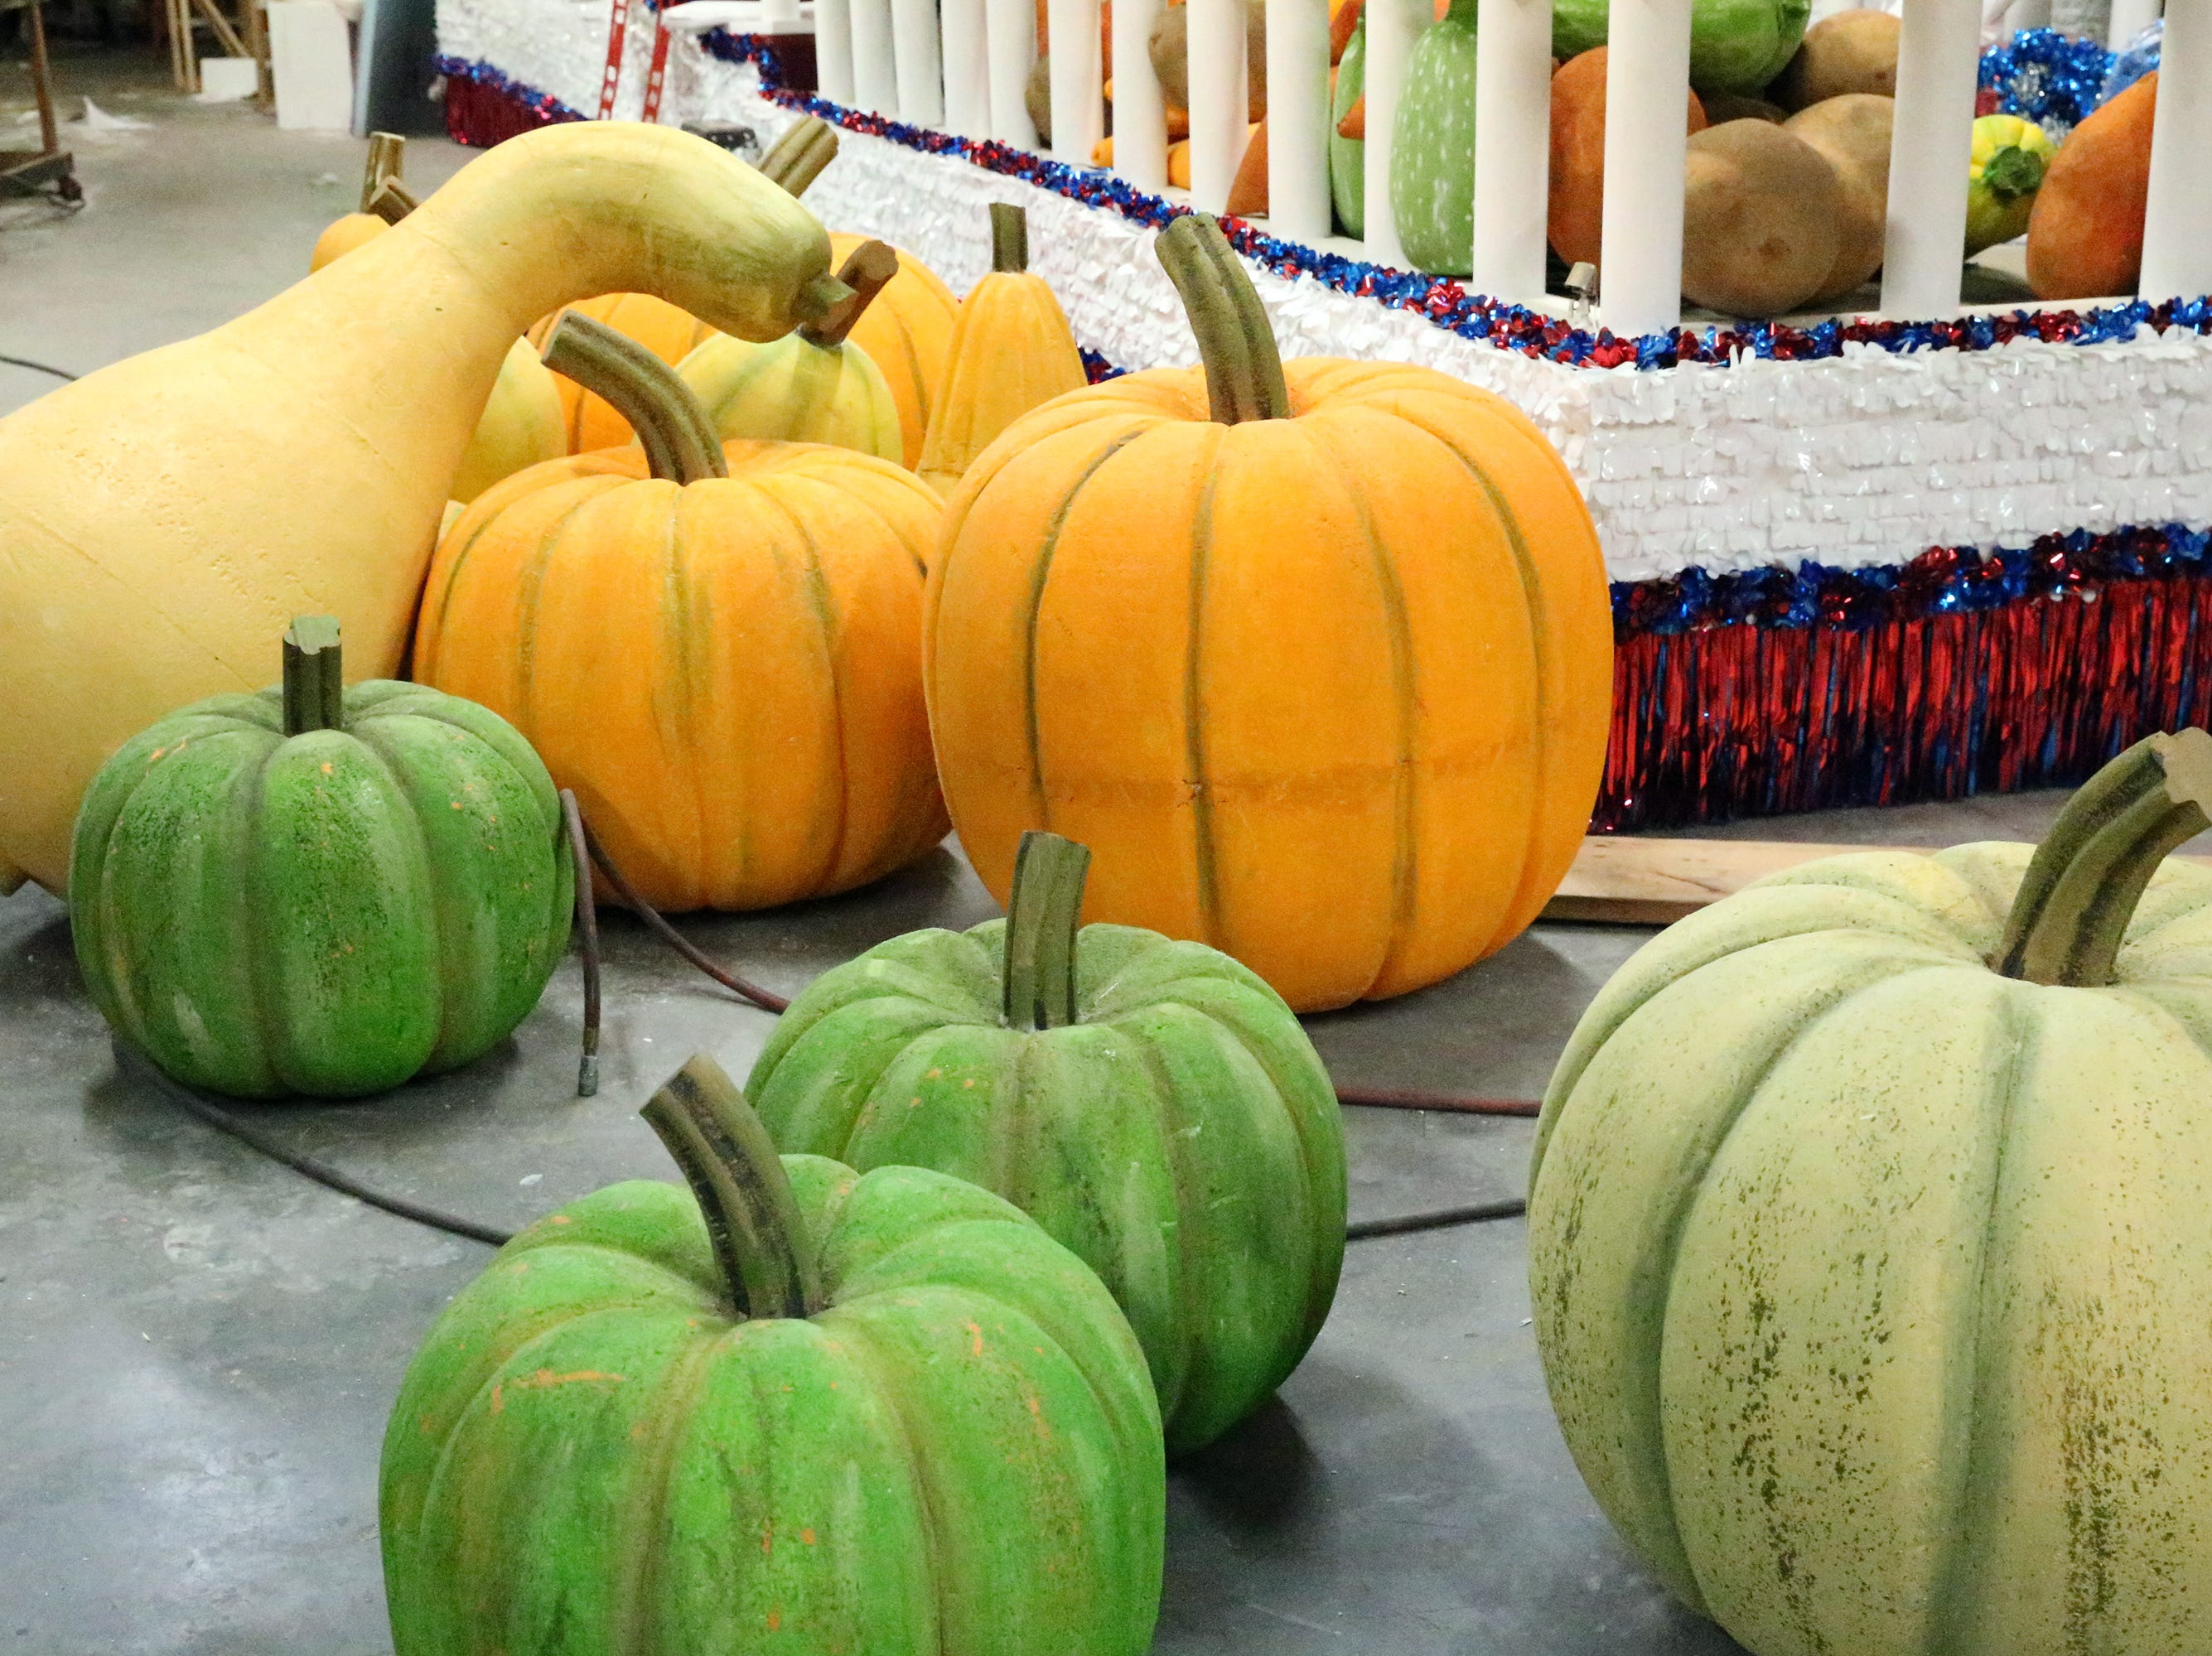 Fruits and vegetables of different sizes are fashioned out of styrofoam to be put as part of a cornucopia on a parade float.